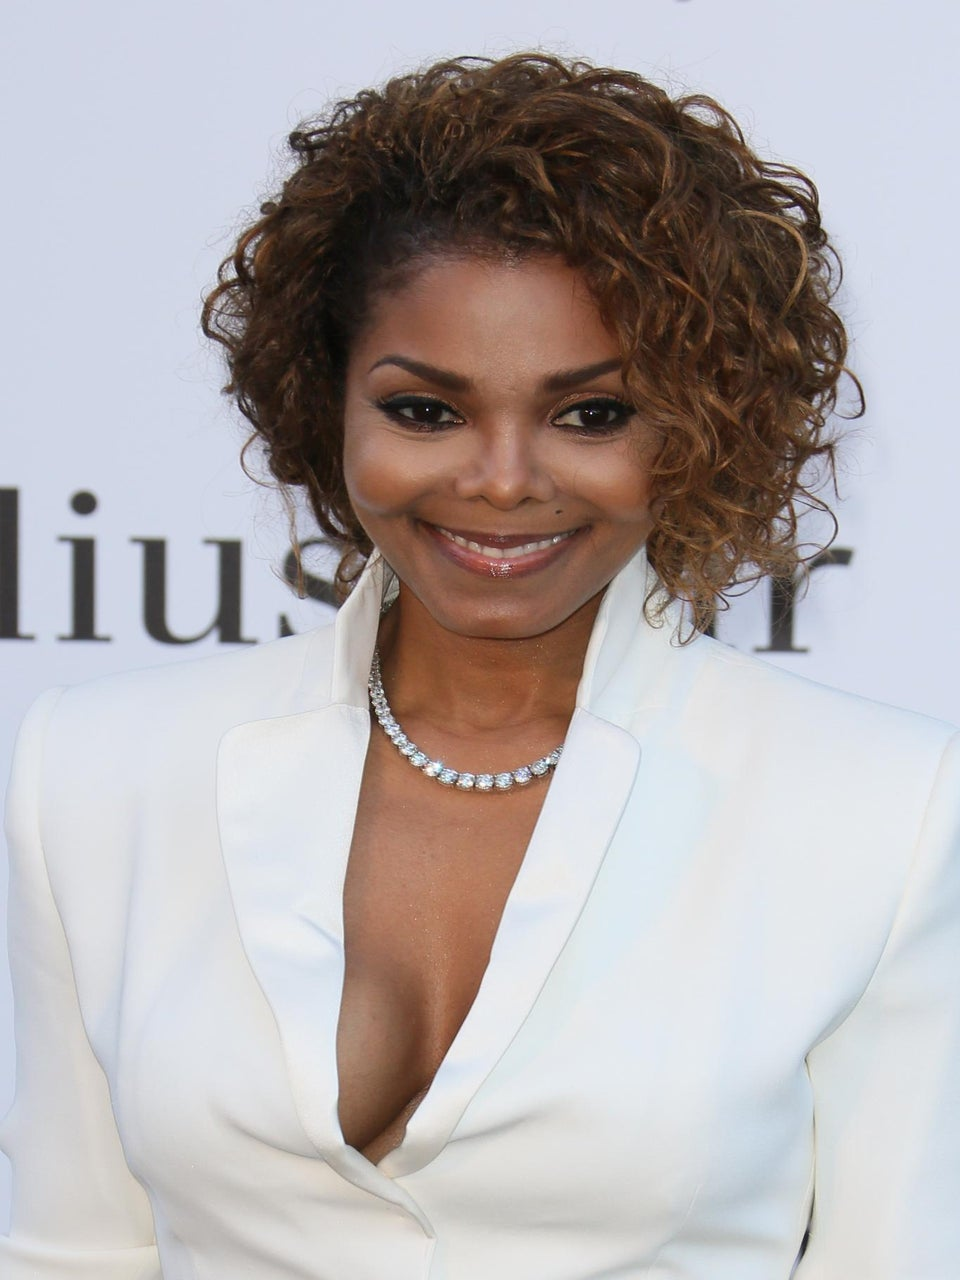 Celebrate Janet Jackson's Return to Music by Reliving Some of Her Best Music Videos